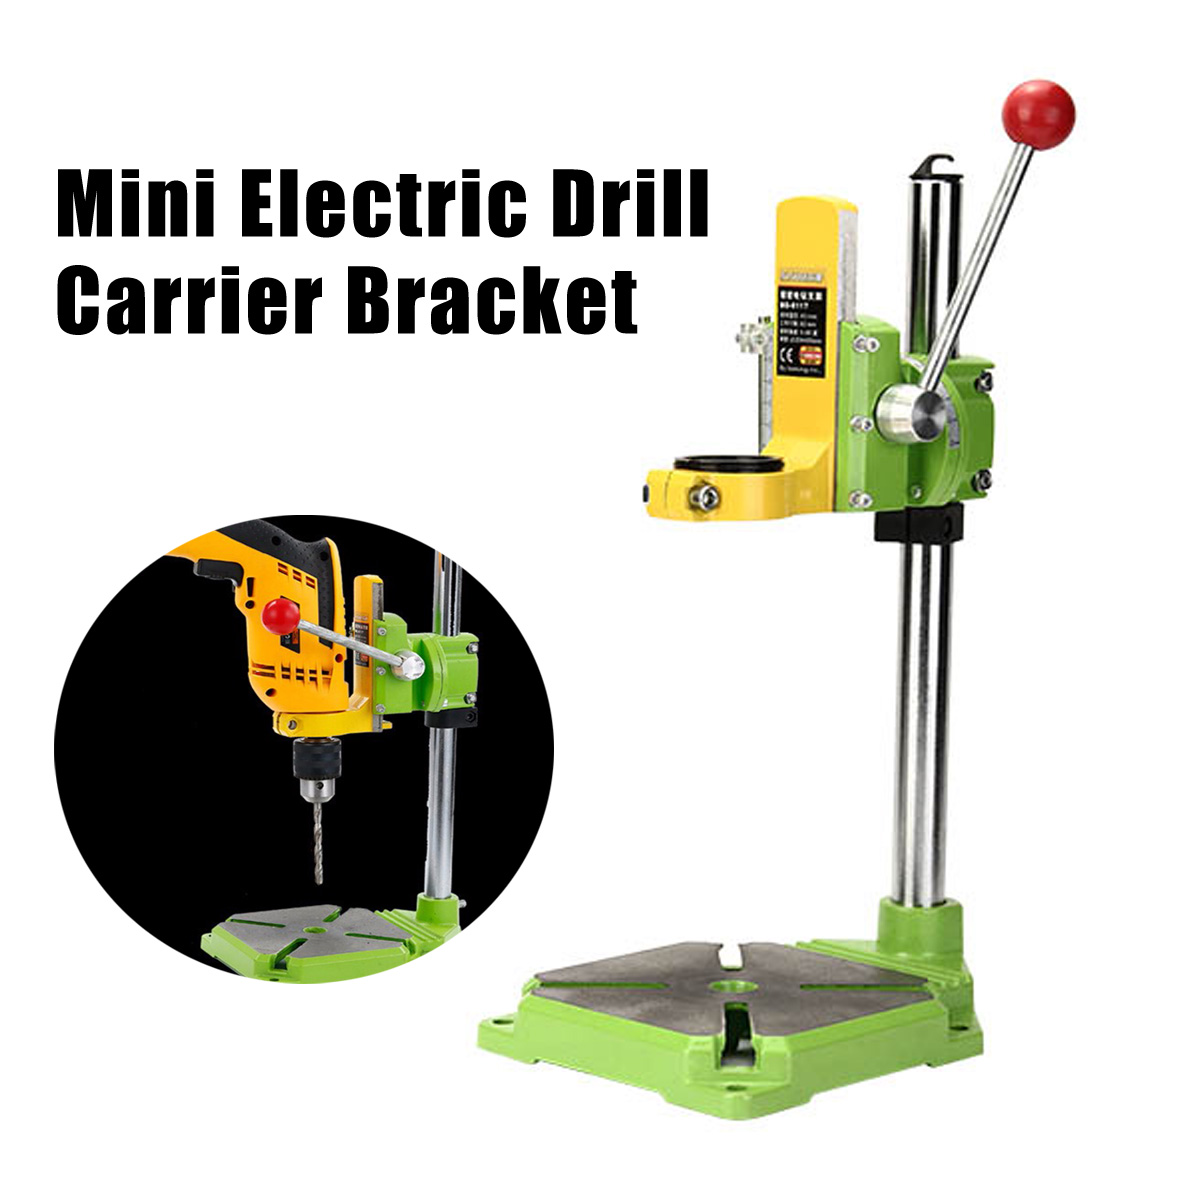 Mini Electric Drill Carrier Bracket 90 Degree Mini Electric Rotating Fixed Frame Bench Drill Stand Press Power Tool AccessoriesMini Electric Drill Carrier Bracket 90 Degree Mini Electric Rotating Fixed Frame Bench Drill Stand Press Power Tool Accessories